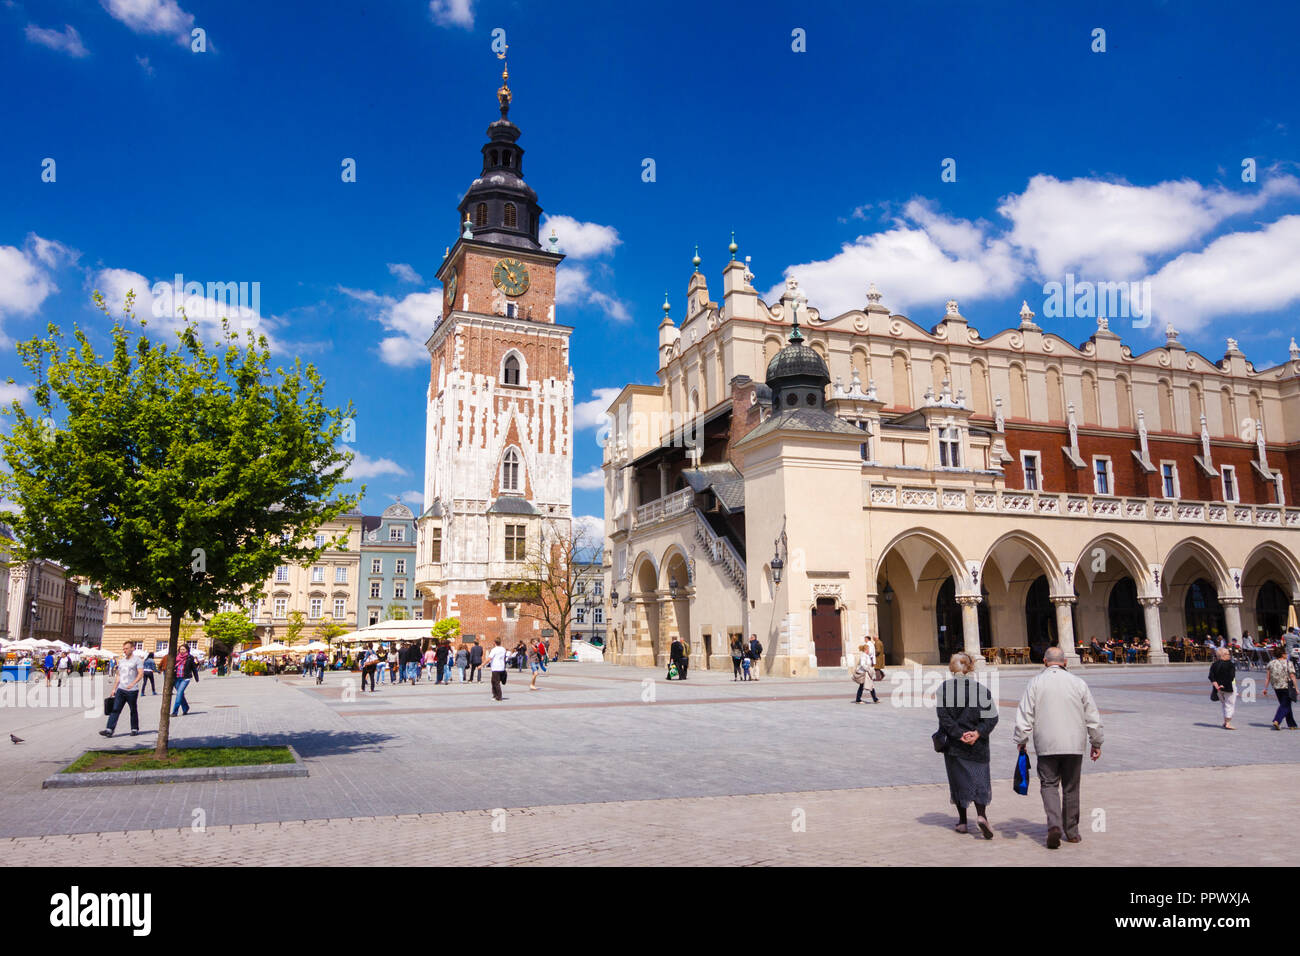 Krakow, Poland : People walks towards the Cloth hall building and old Town Hall Tower at the center of the main market square in the Krakow Old Town ( Stock Photo